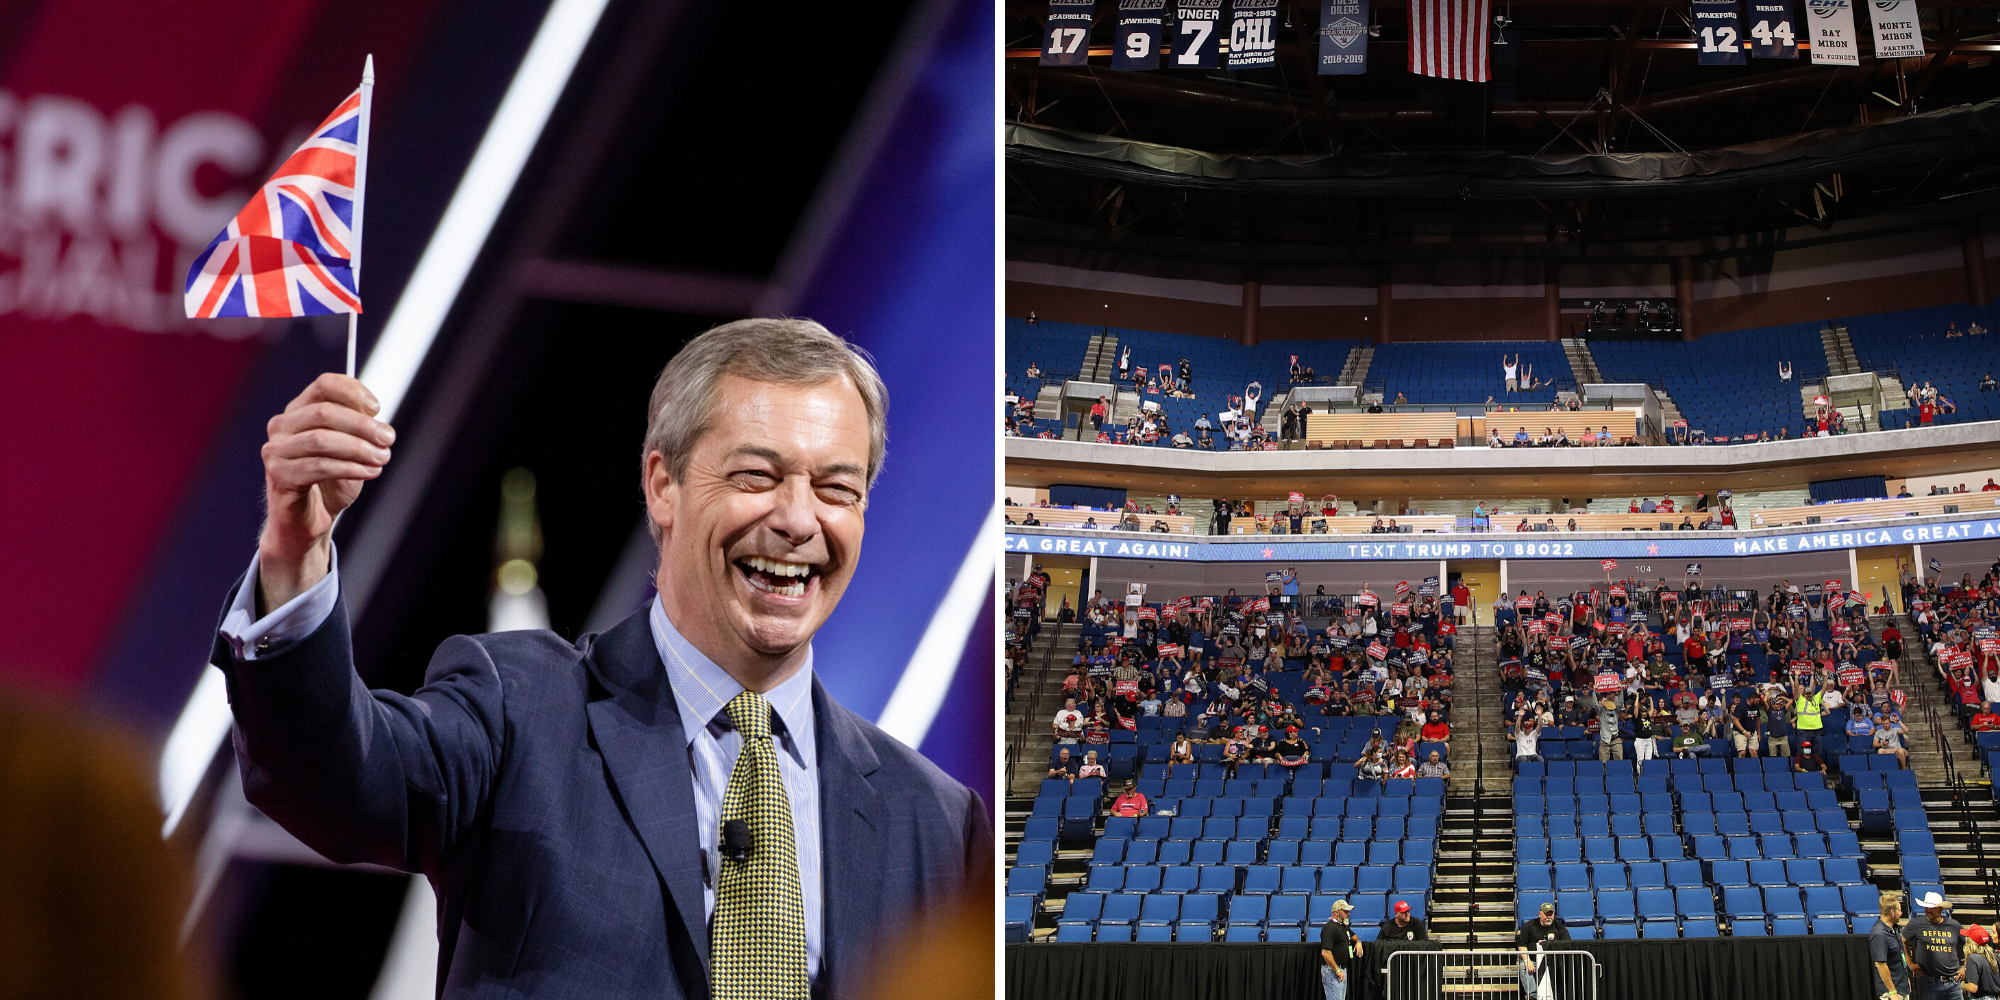 Investigation launched into Nigel Farage's travel to US to attend Trump rally